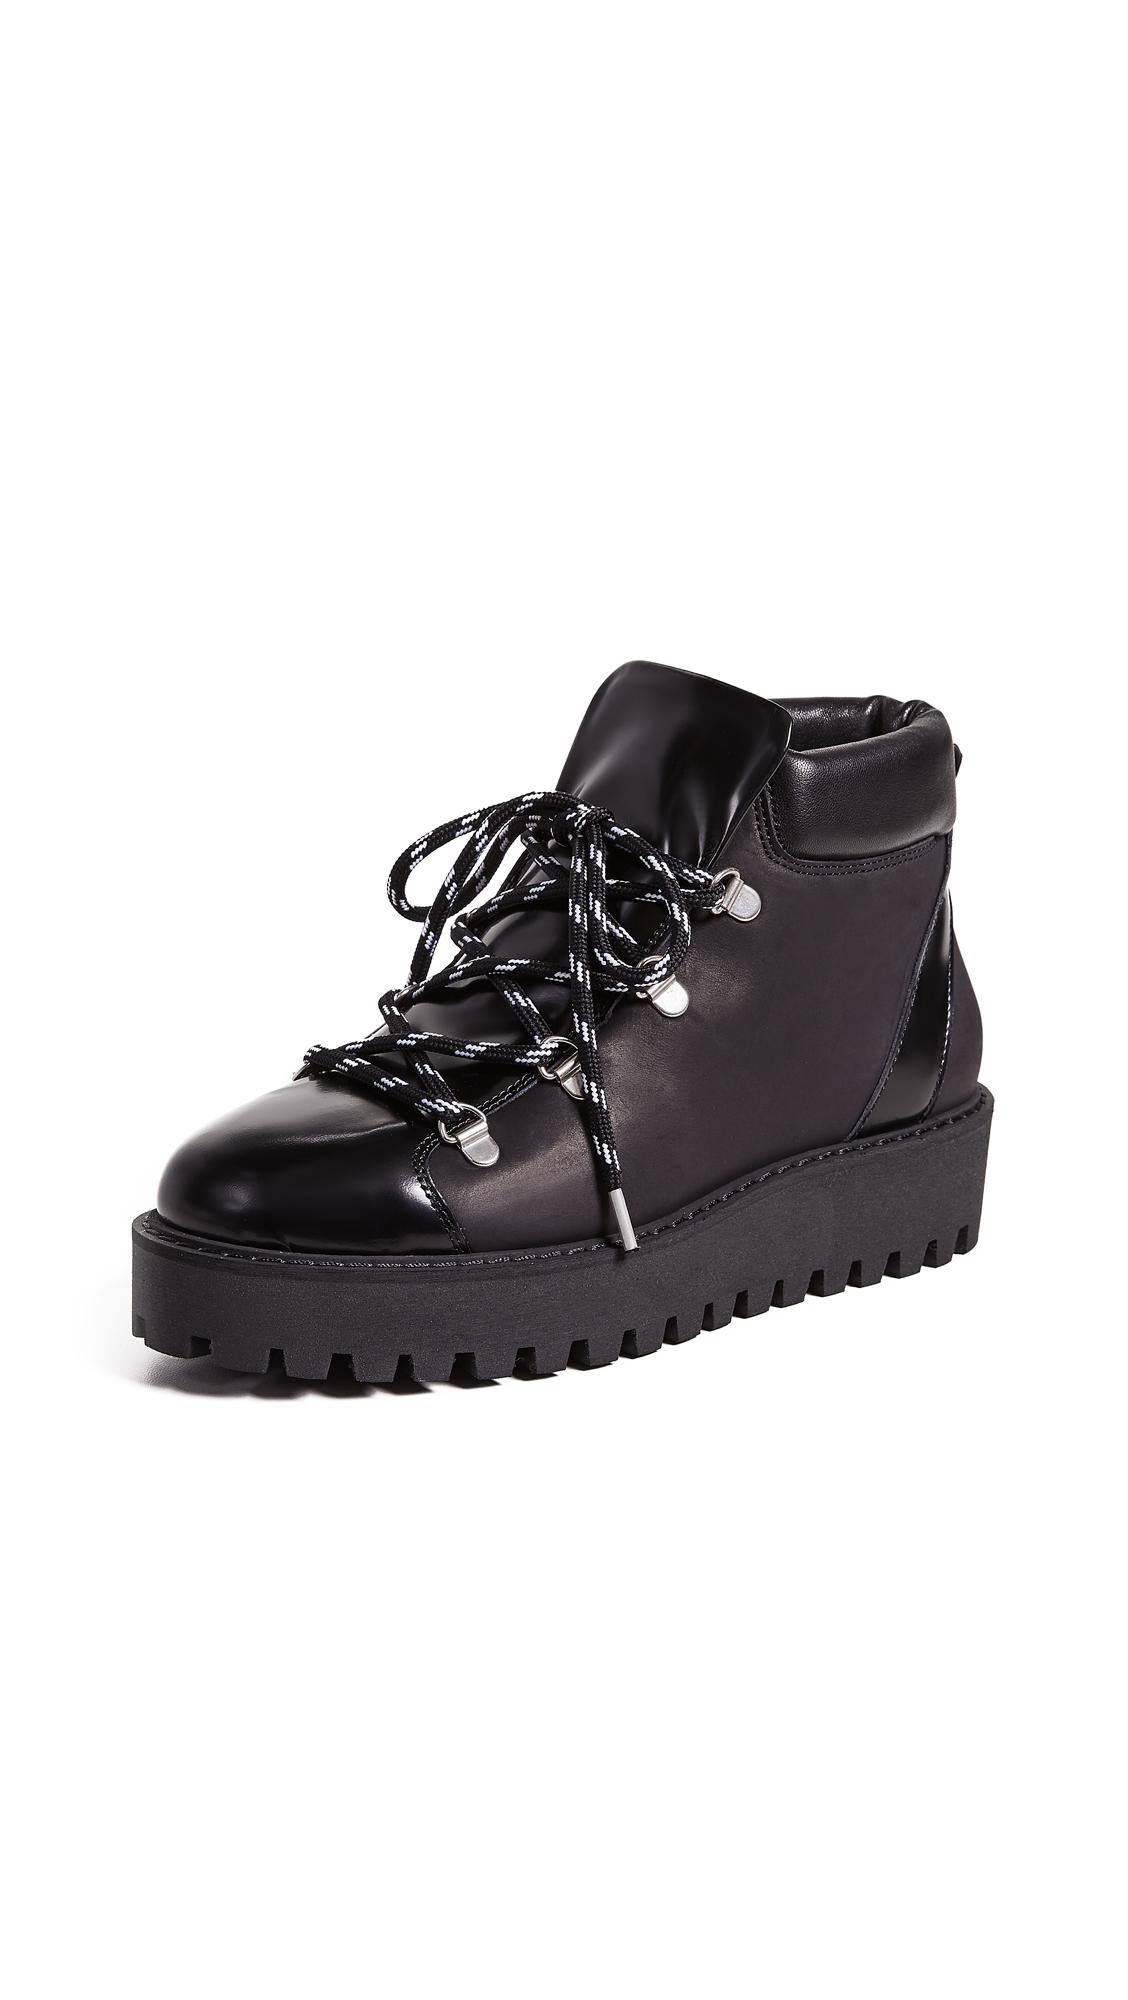 bb8c442571b 30Mm Alma Leather & Shearling Boots in Black